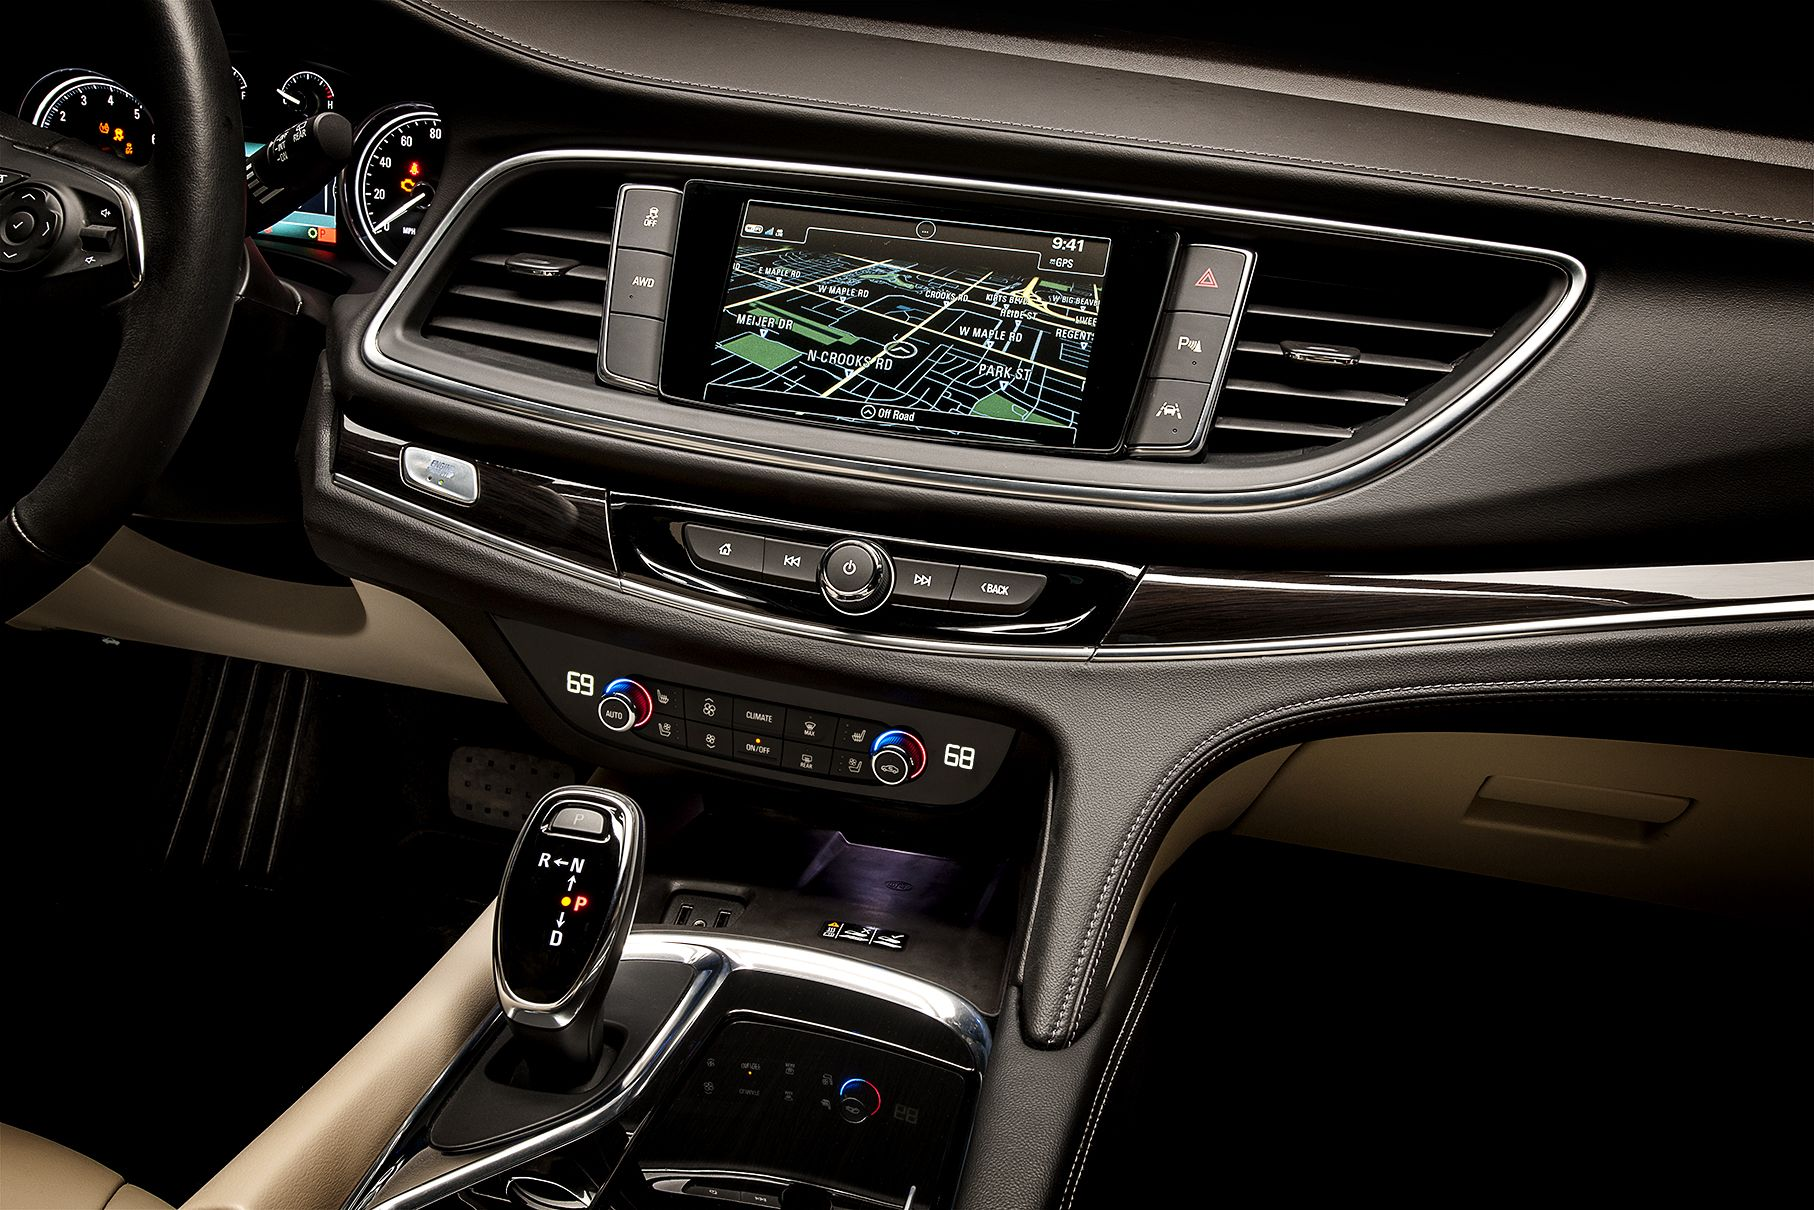 2018 buick enclave center stack featuring touch screen navigation